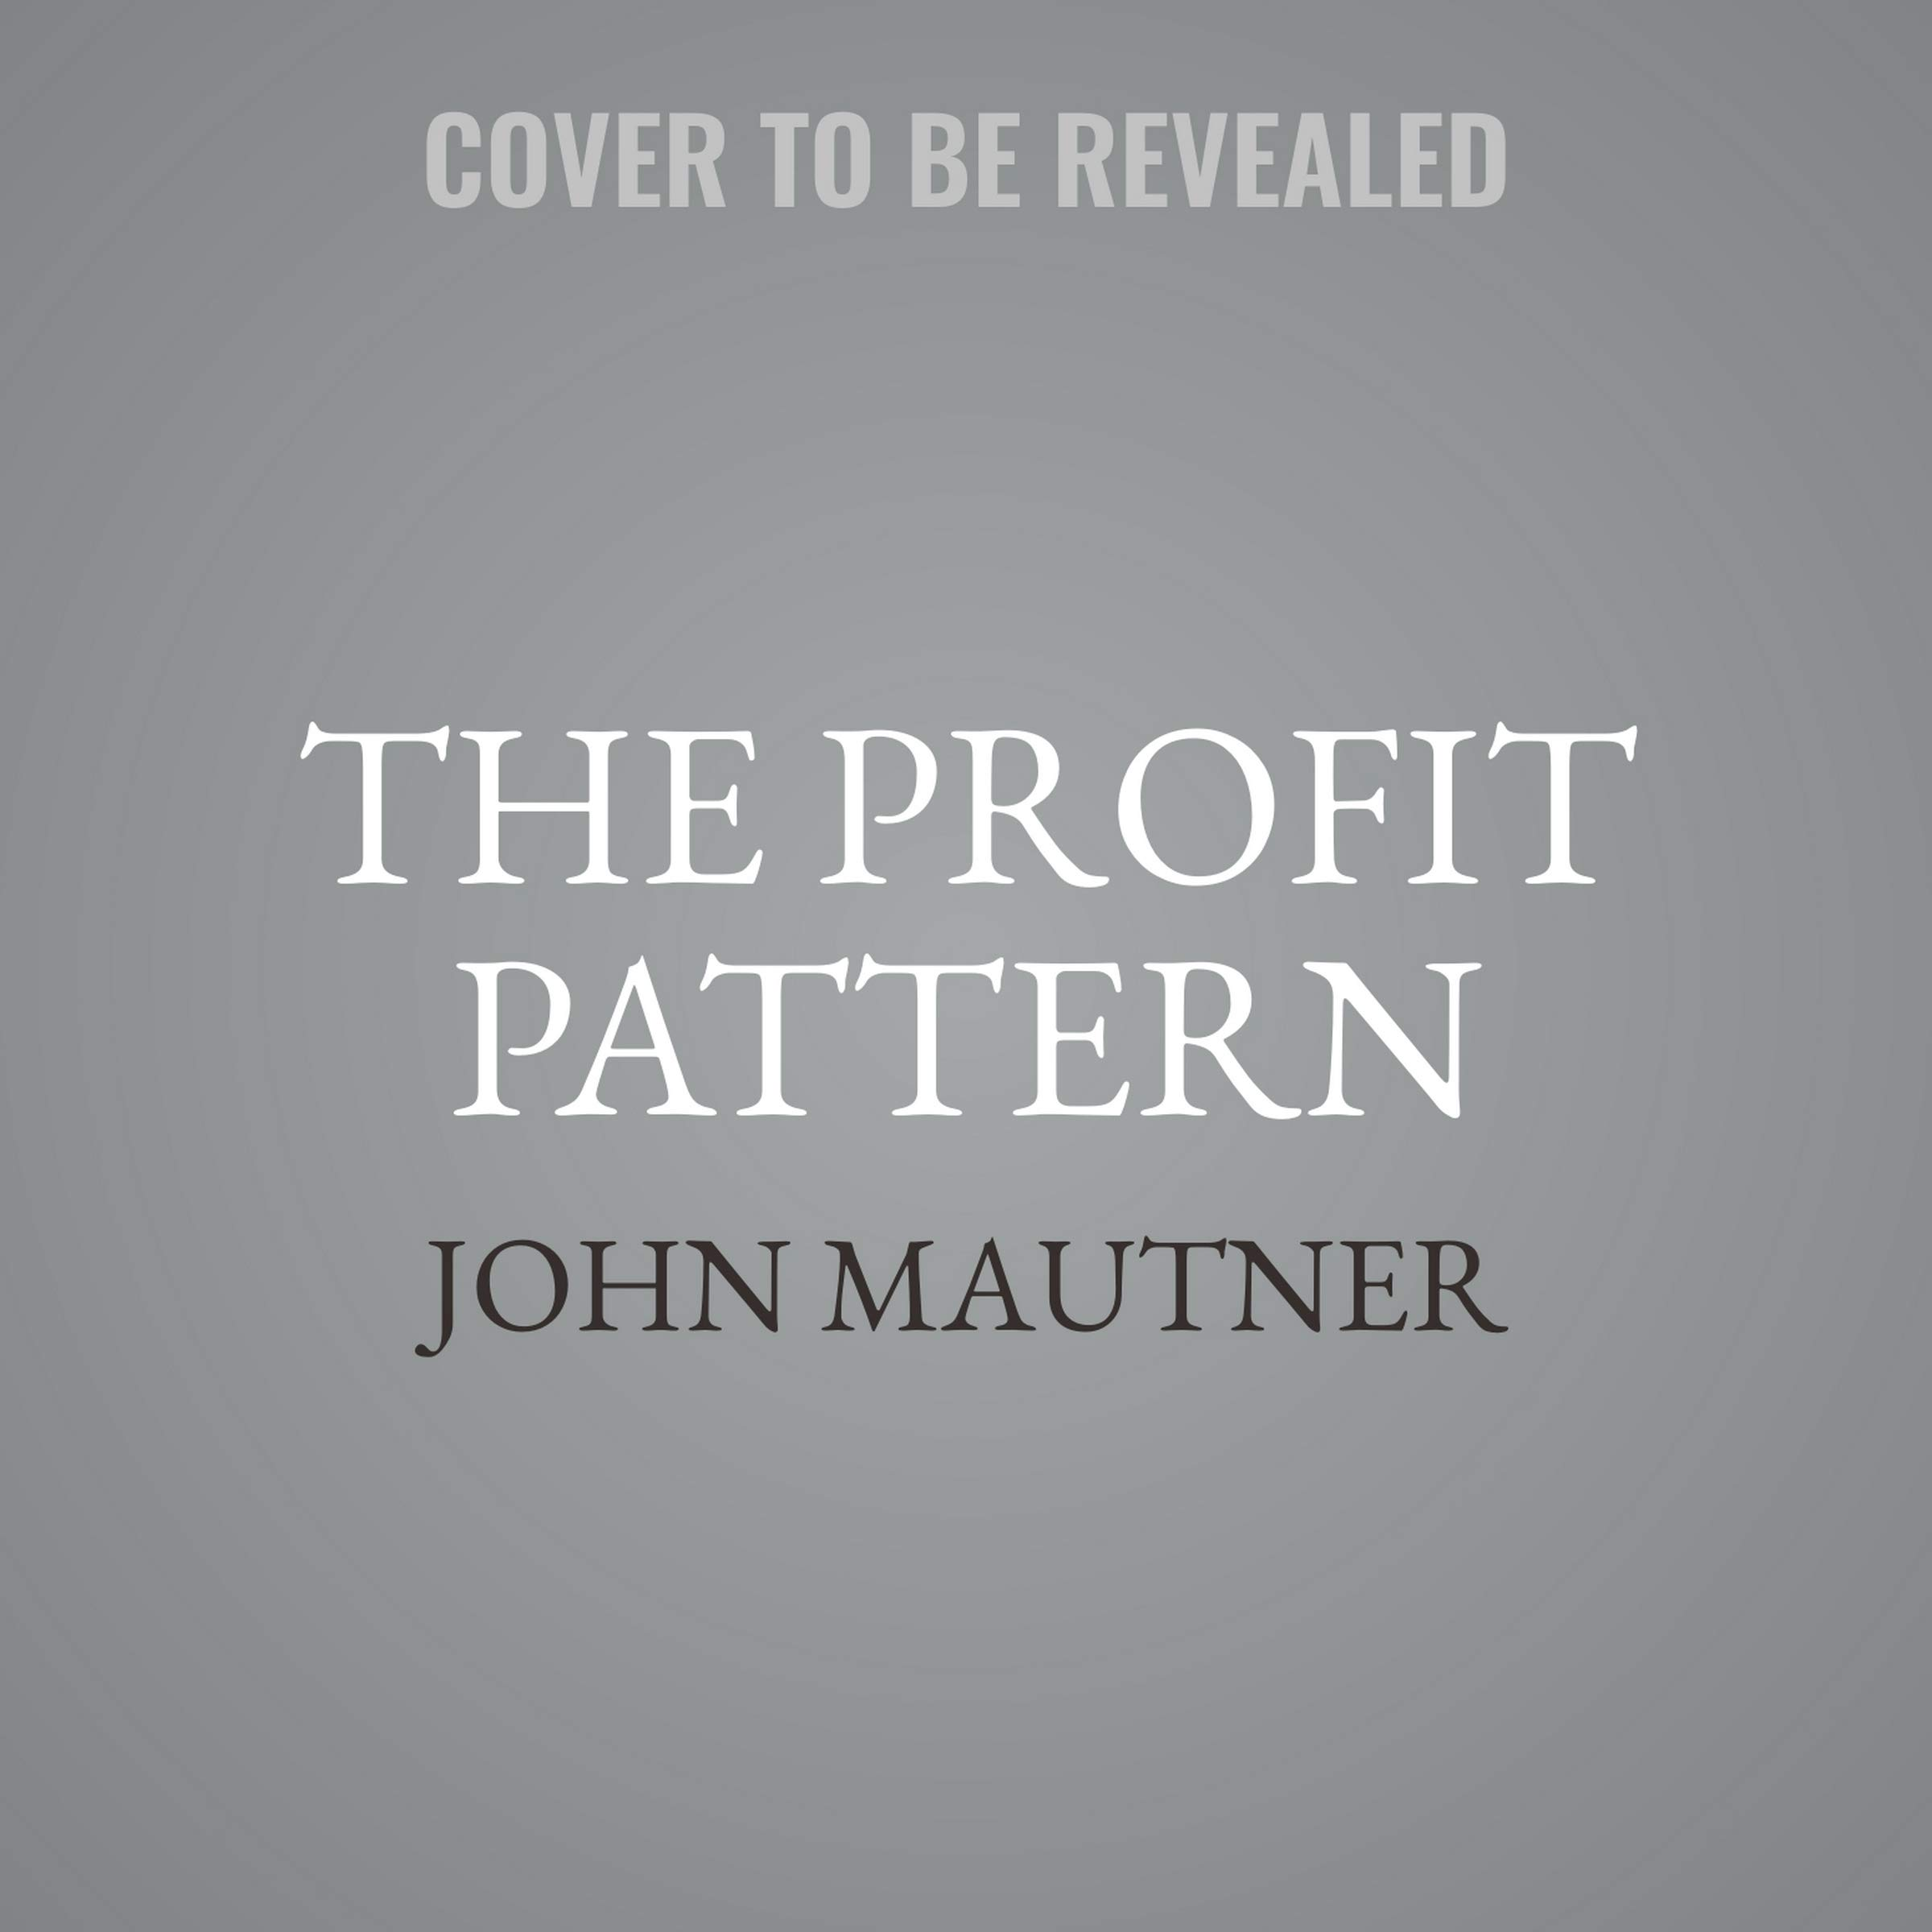 The Profit Pattern: The Top 10 Tools to Transform Your Business: Drive Performance, Empower Your People, Accelerate Productivity and Profitability by Made for Success and Blackstone Audio (Image #1)